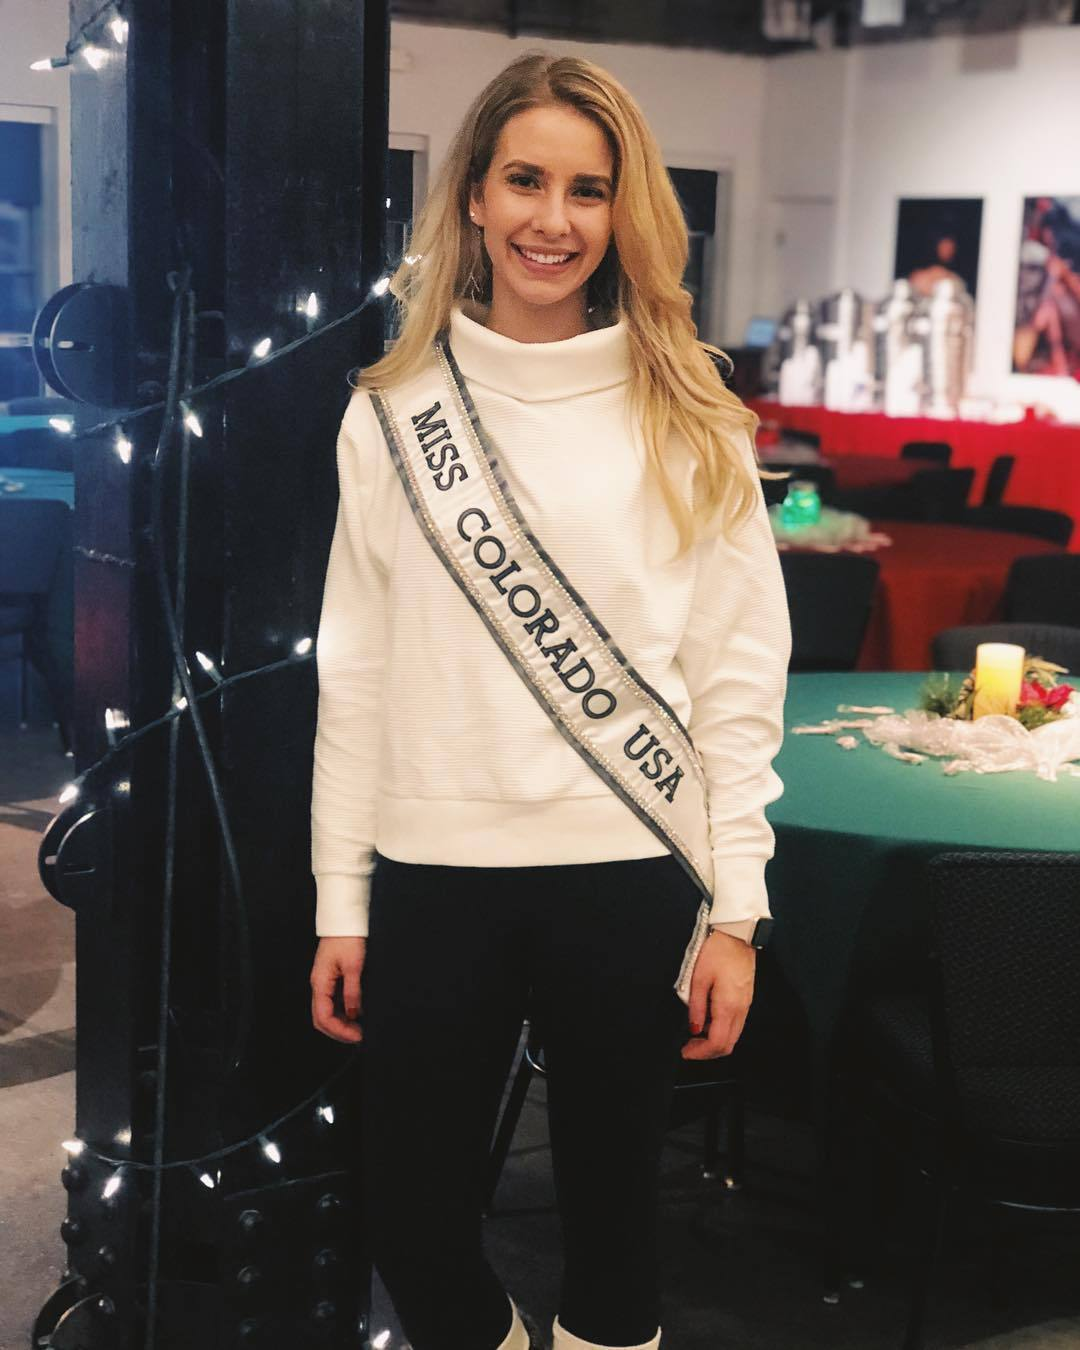 madison dorenkamp, miss colorado 2019. 44862934_991821527686920_126429738797321645_n